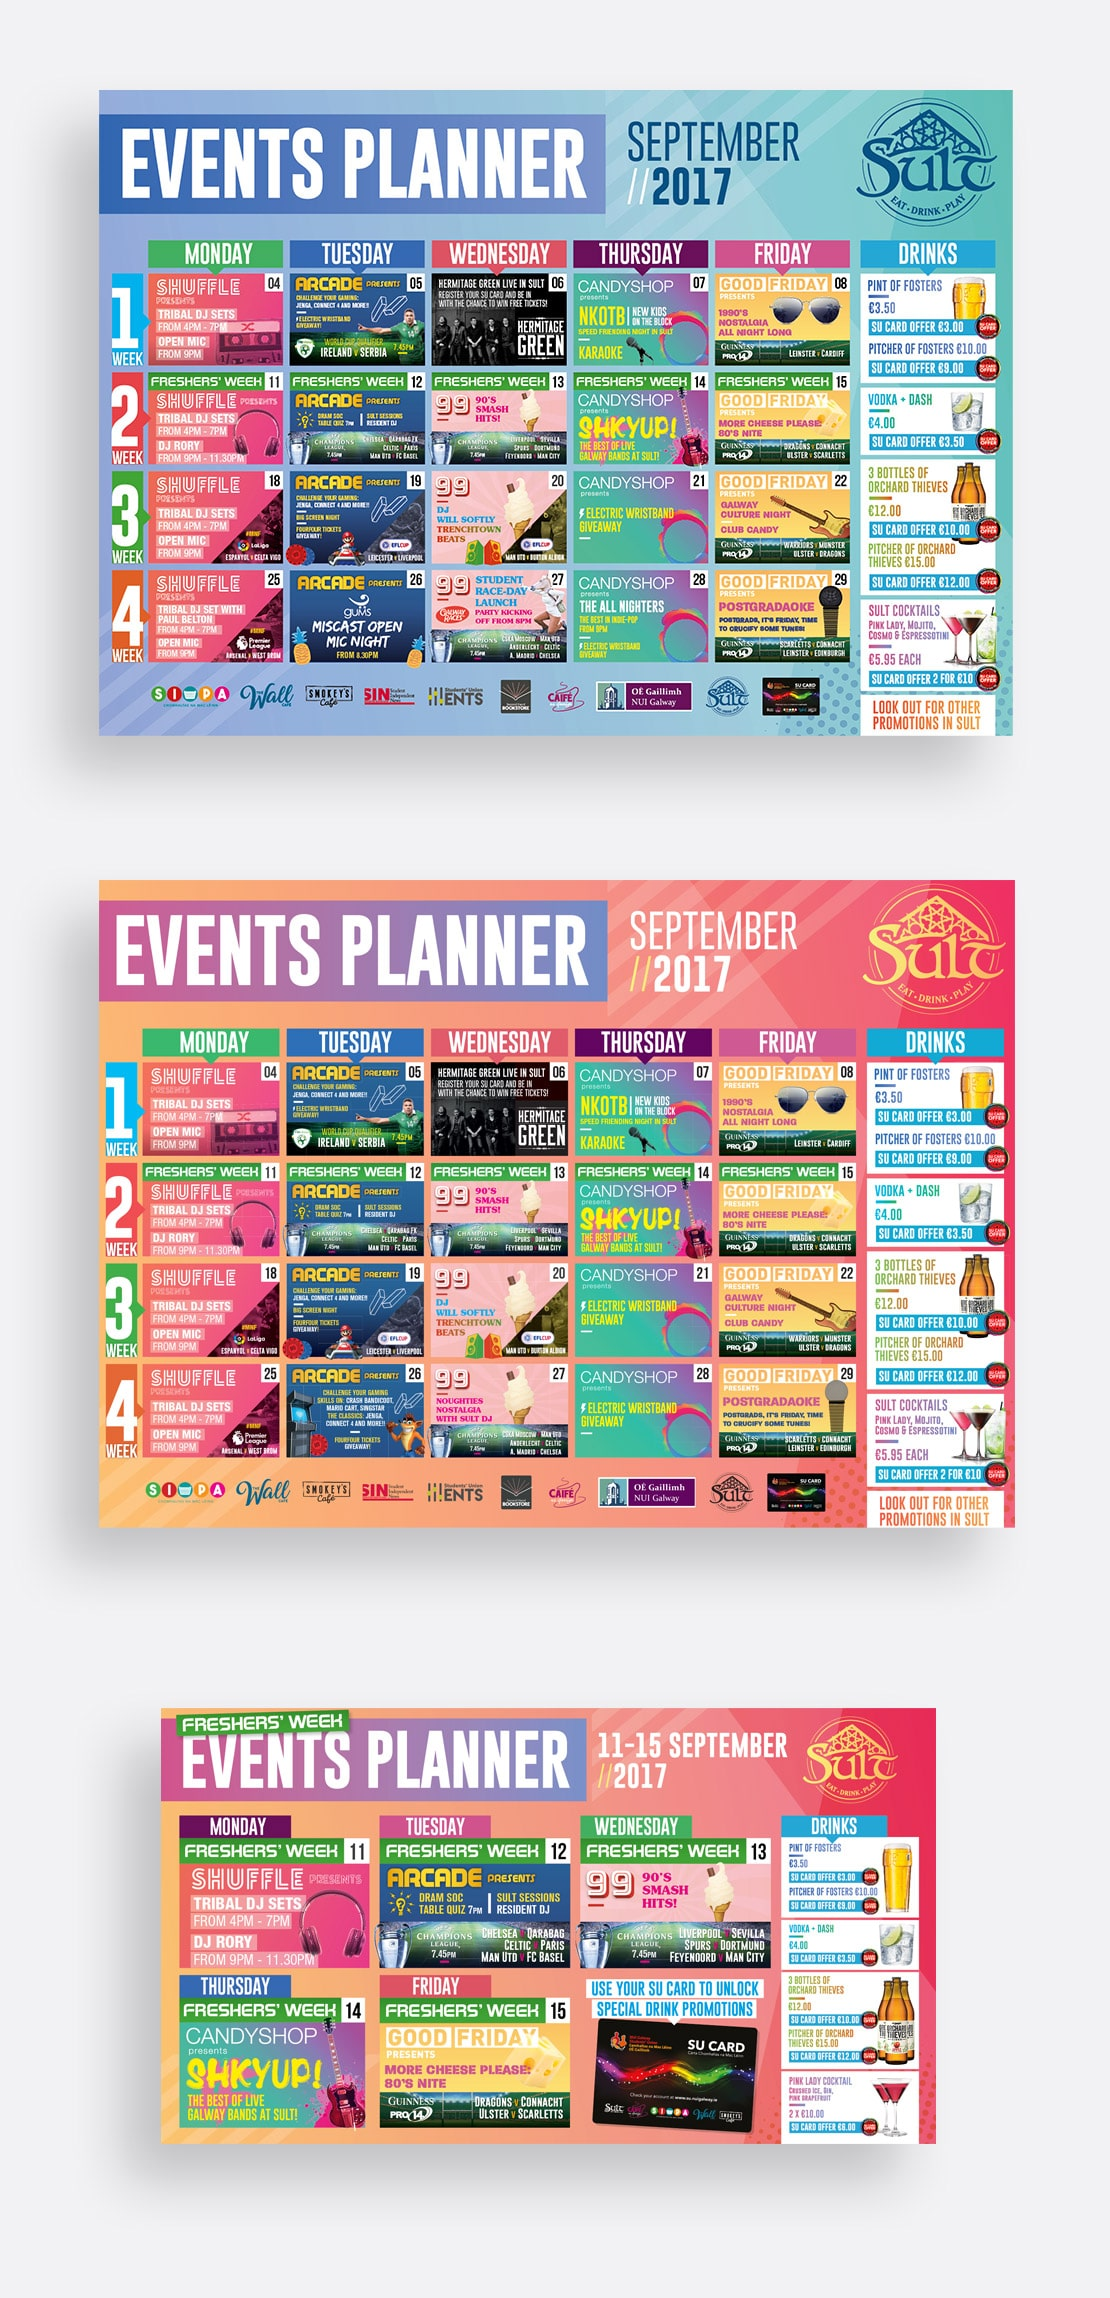 Large format events planner in print and digital formats for Sult Bar, NUIG